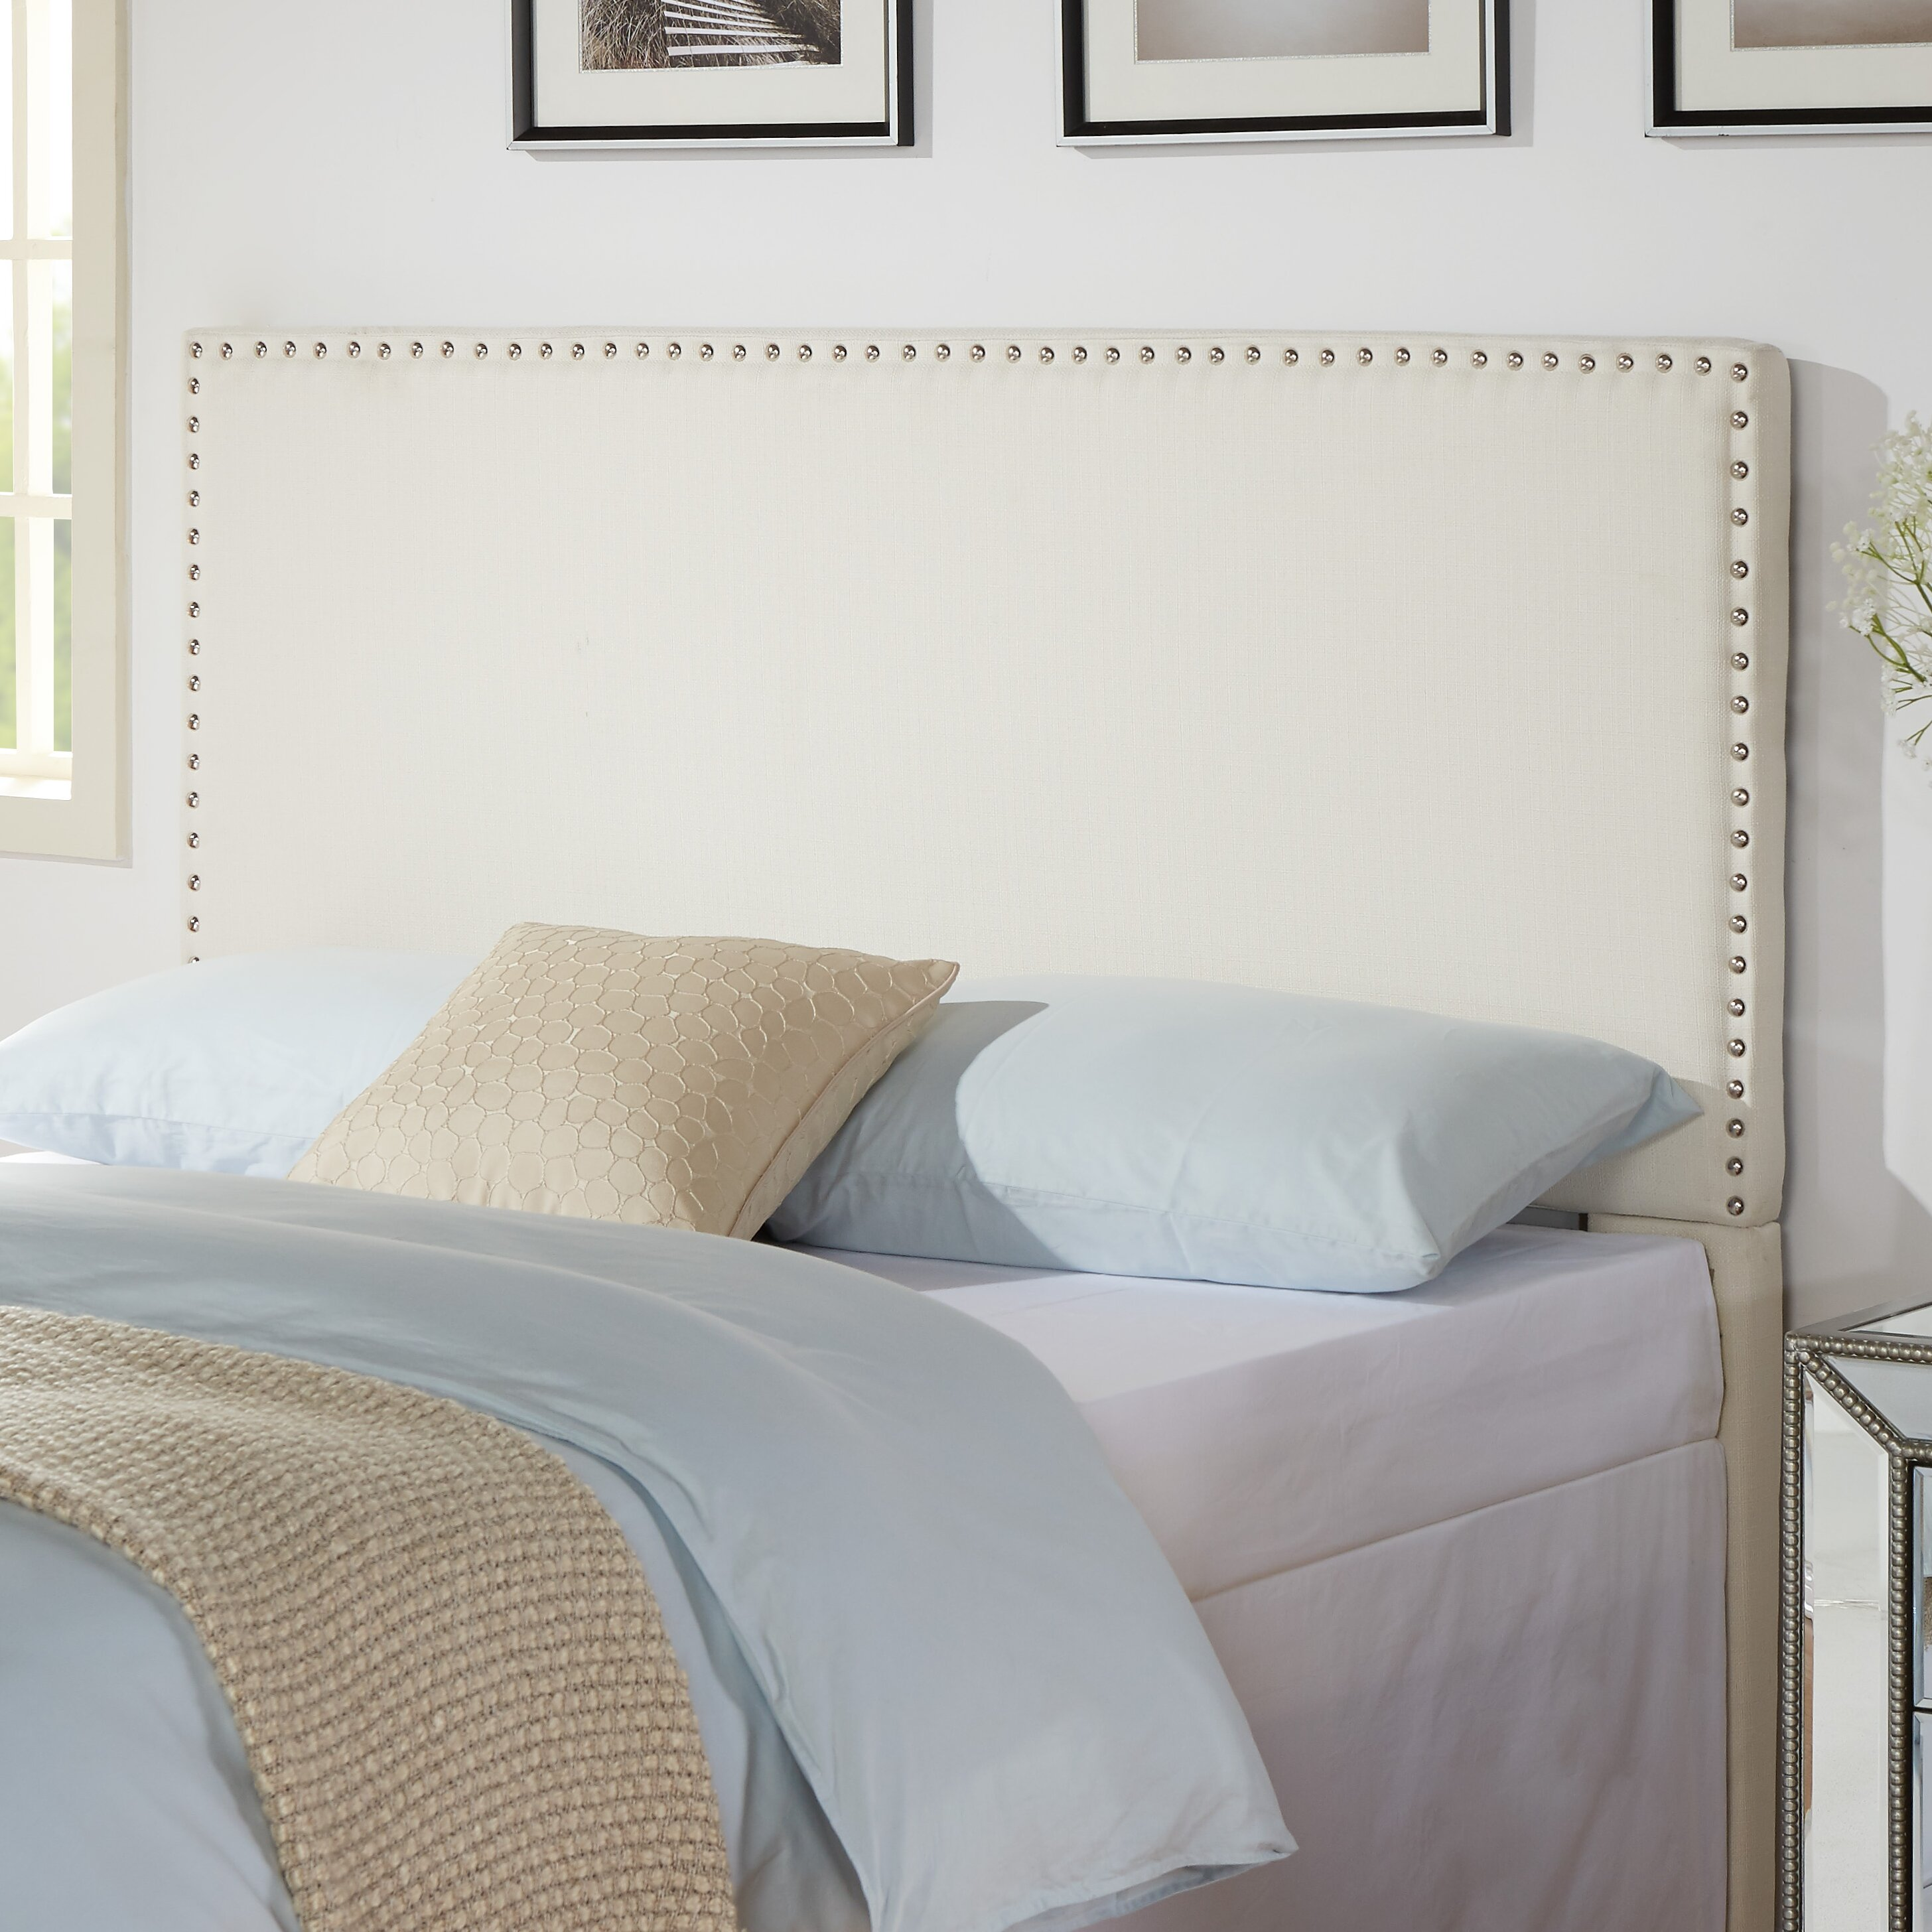 How to cover a headboard - Zipcode Trade Design Kelsey Upholstered Headboard